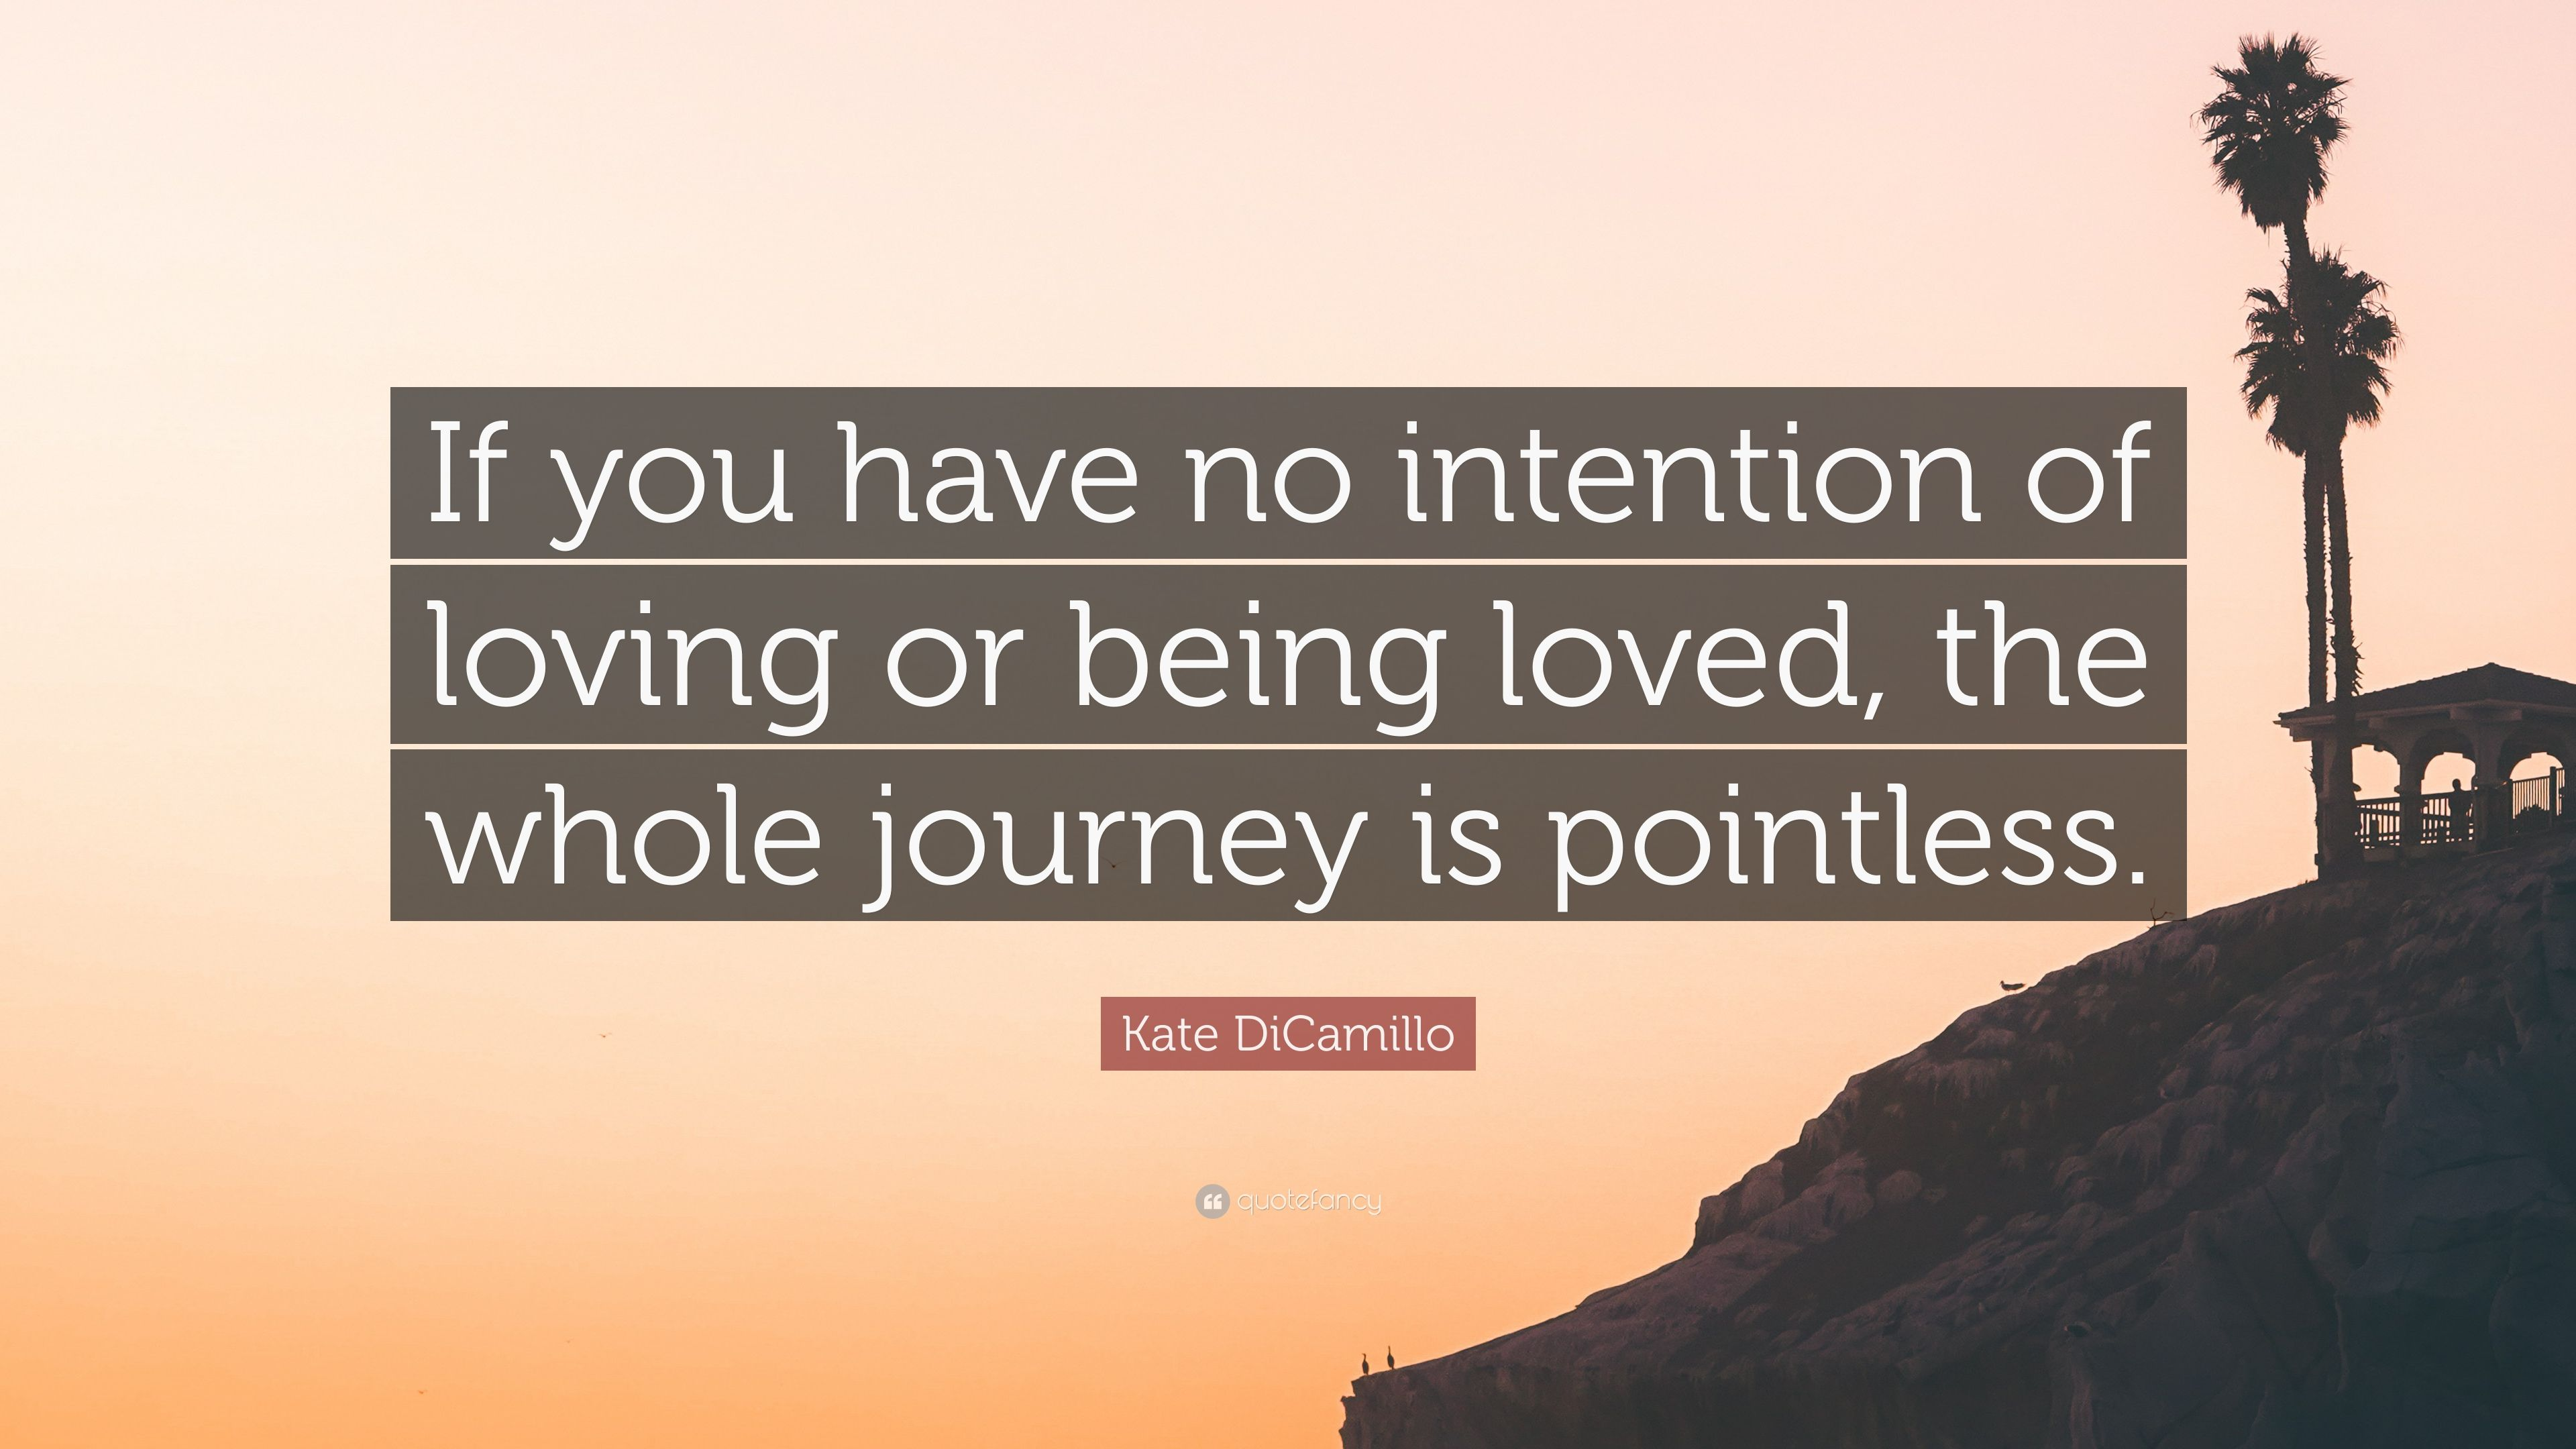 Kate DiCamillo Quote: If you have no intention of loving